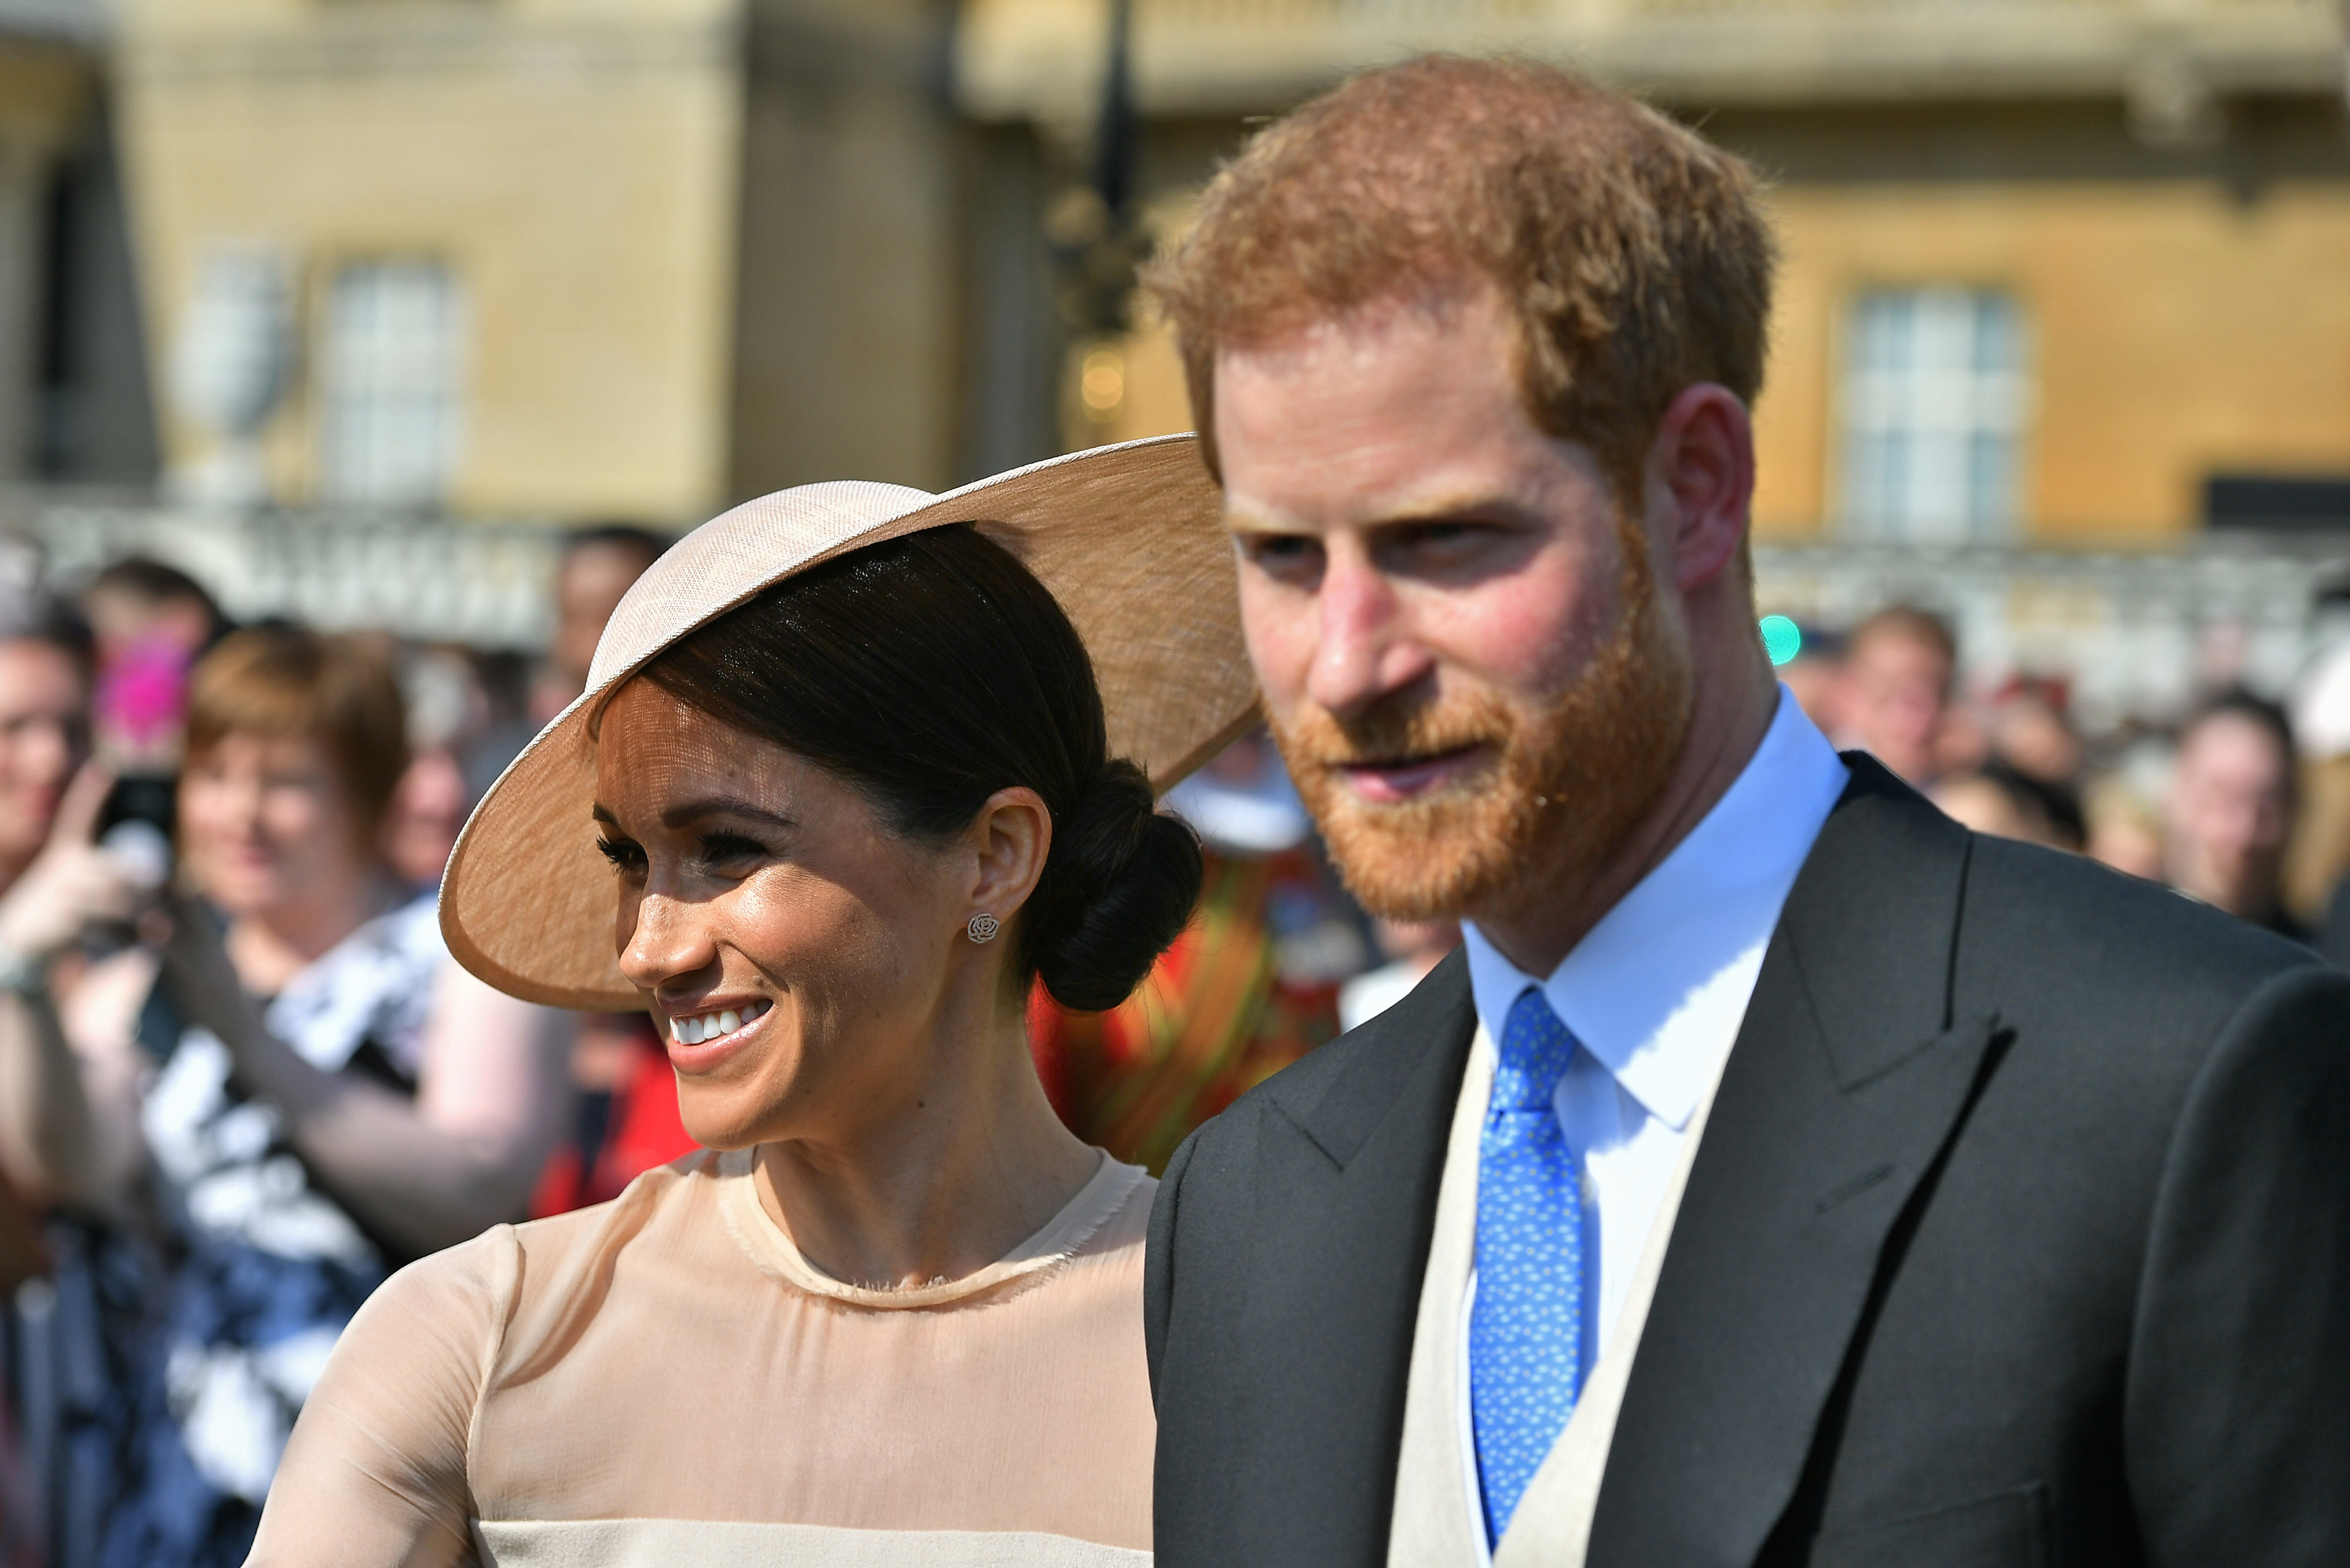 The Queen plans to'rebrand and modernize' the royal family and sees Meghan Markle as a'positive' addition | MEAWW